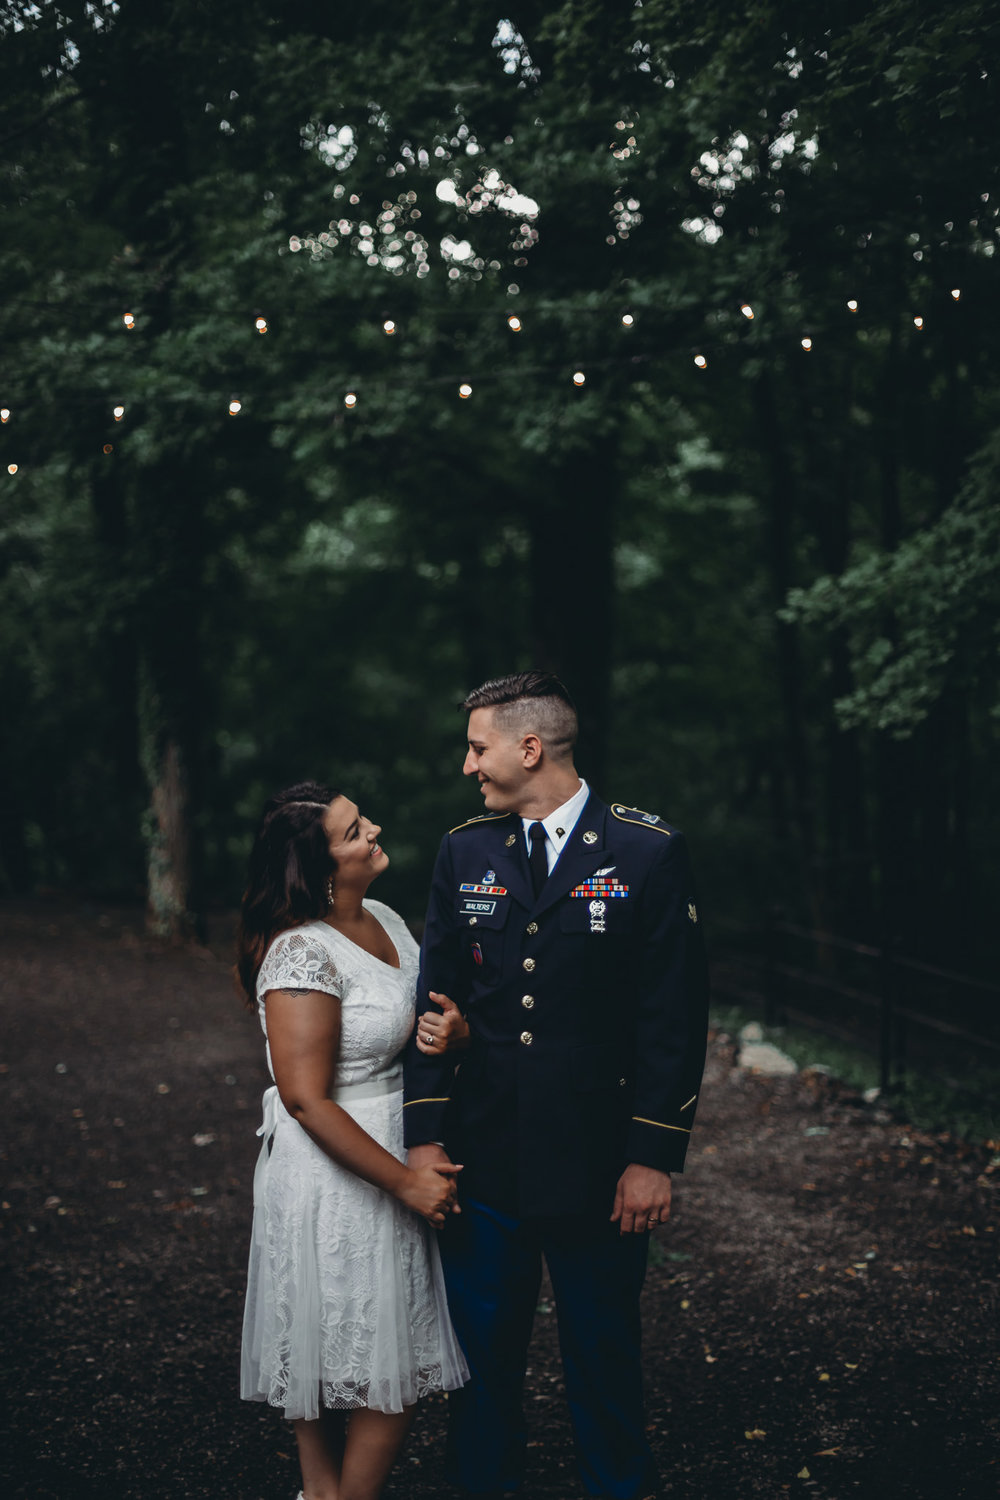 bride and groom in army dress uniform